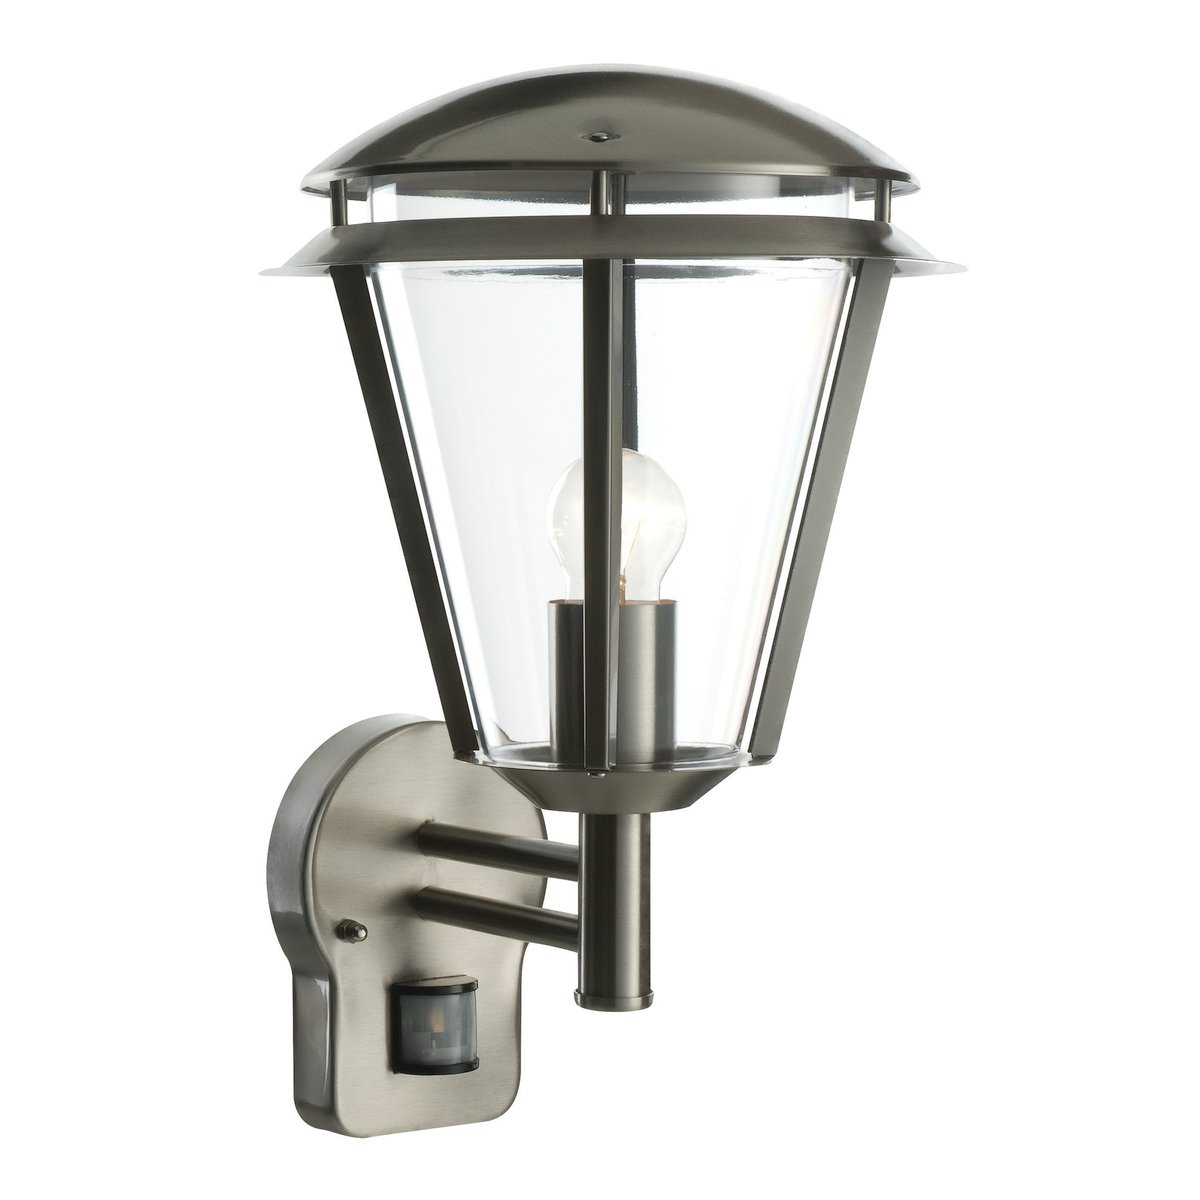 Modern Outdoor Brushed Stainless Steel Wall Lantern Security Light Complete with PIR Motion Sensor Detector IP44 Weatherproof Lamp Wall Light [Energy Class E] National Lighting